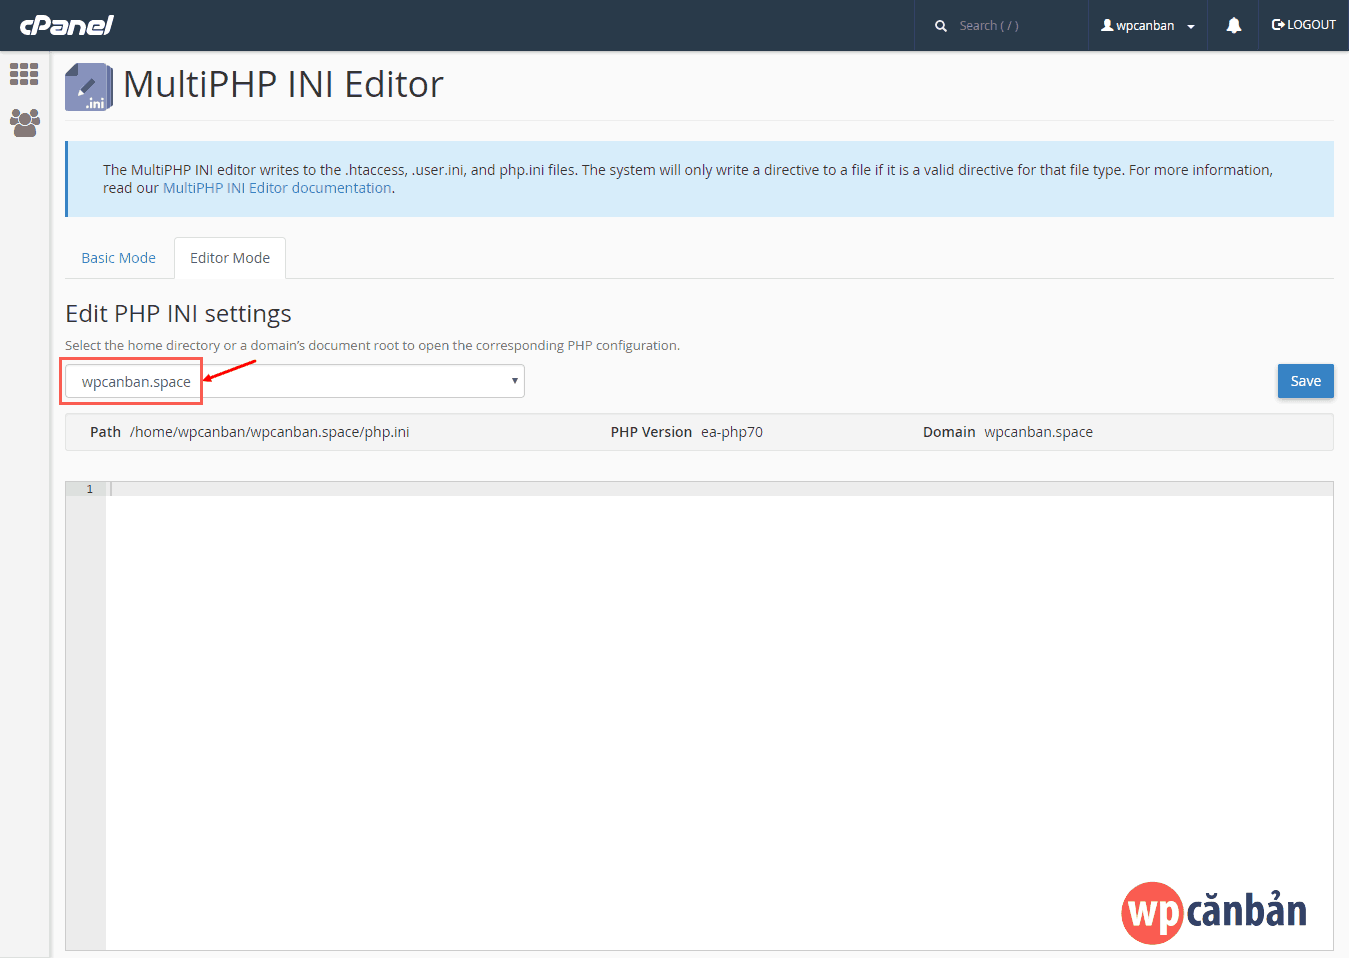 chinh-thong-so-php-o-editor-mode